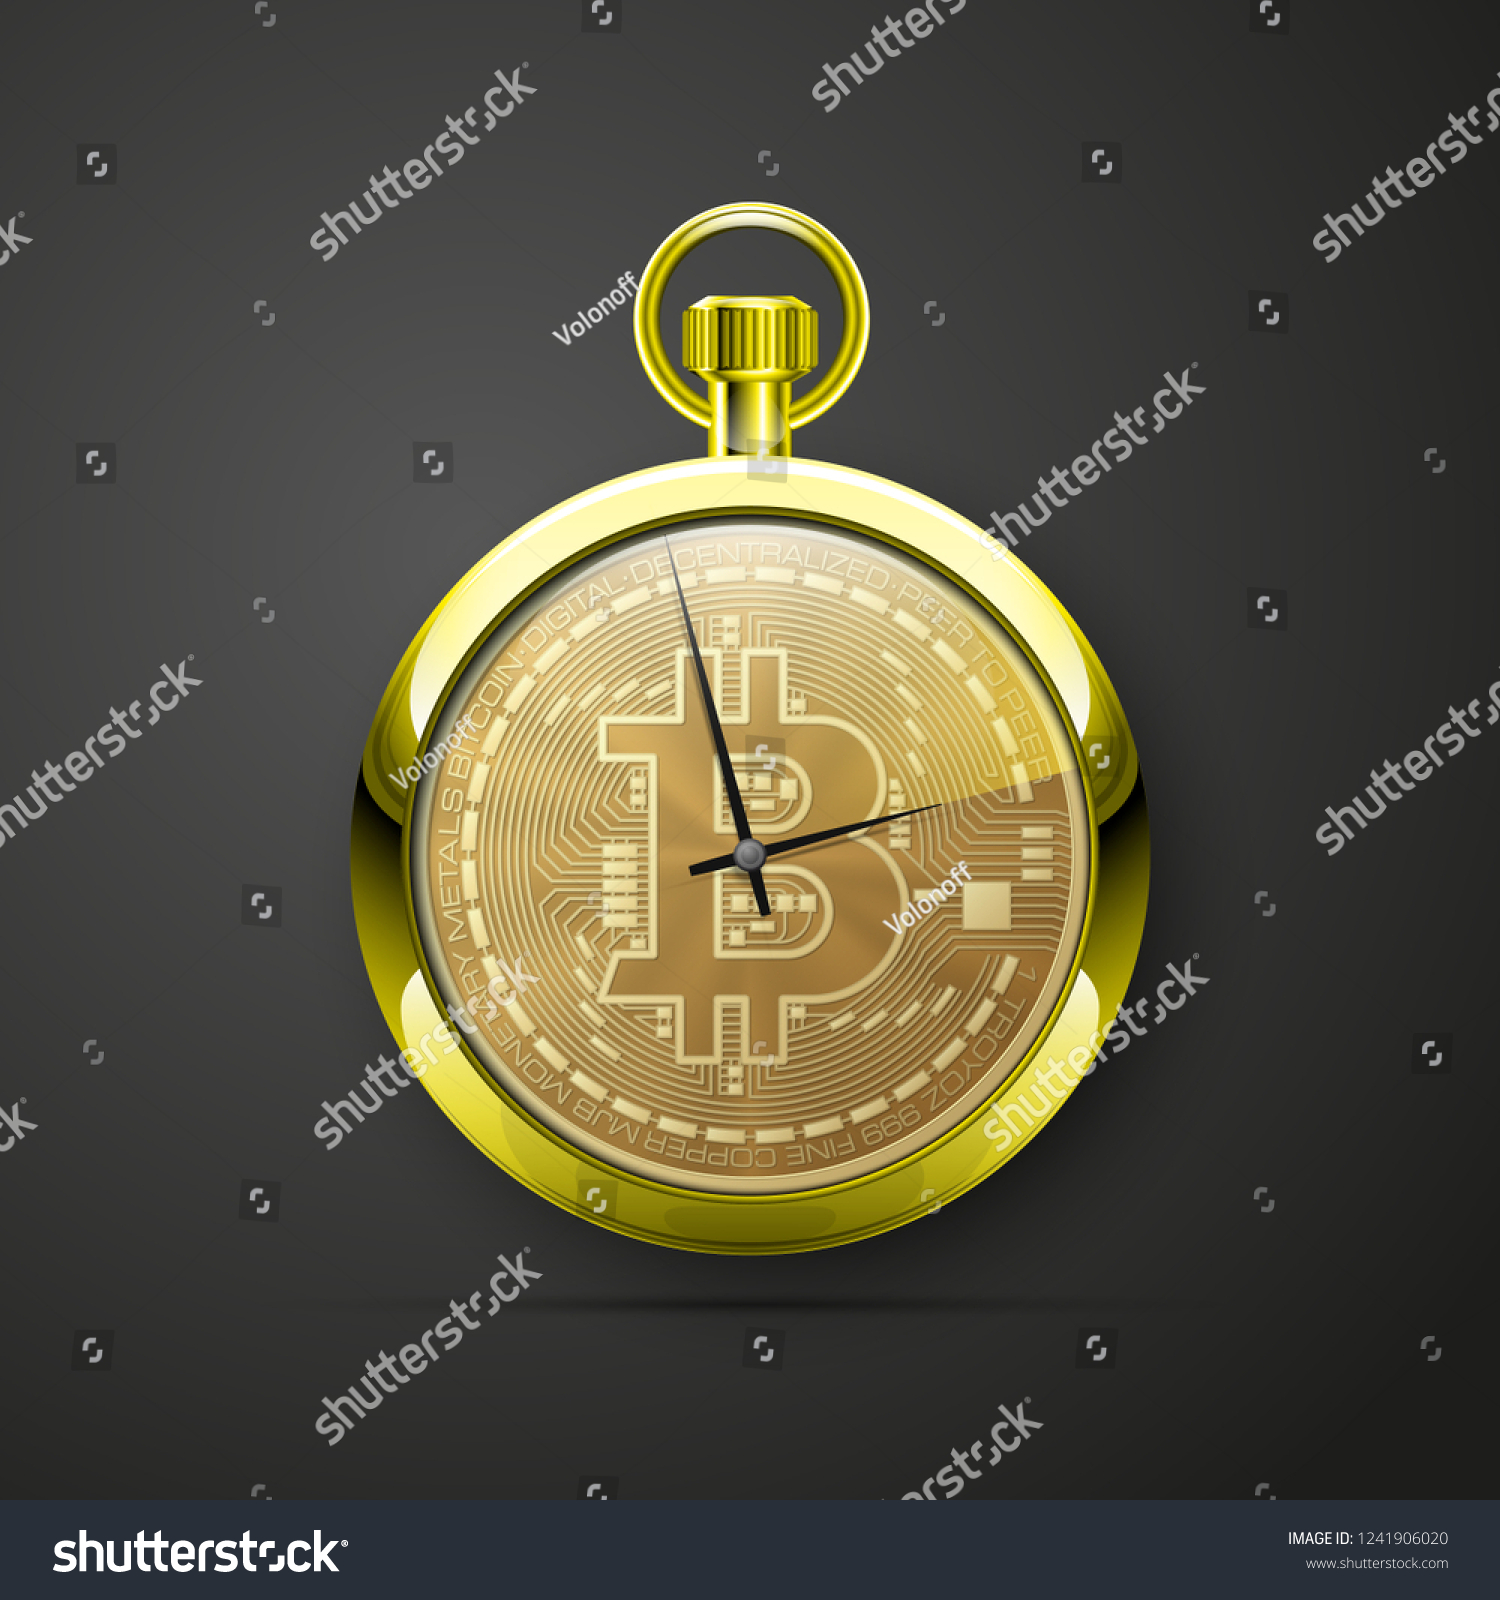 Hud Stopwatch Bitcoin Digital Currency Pocket Stock Vector